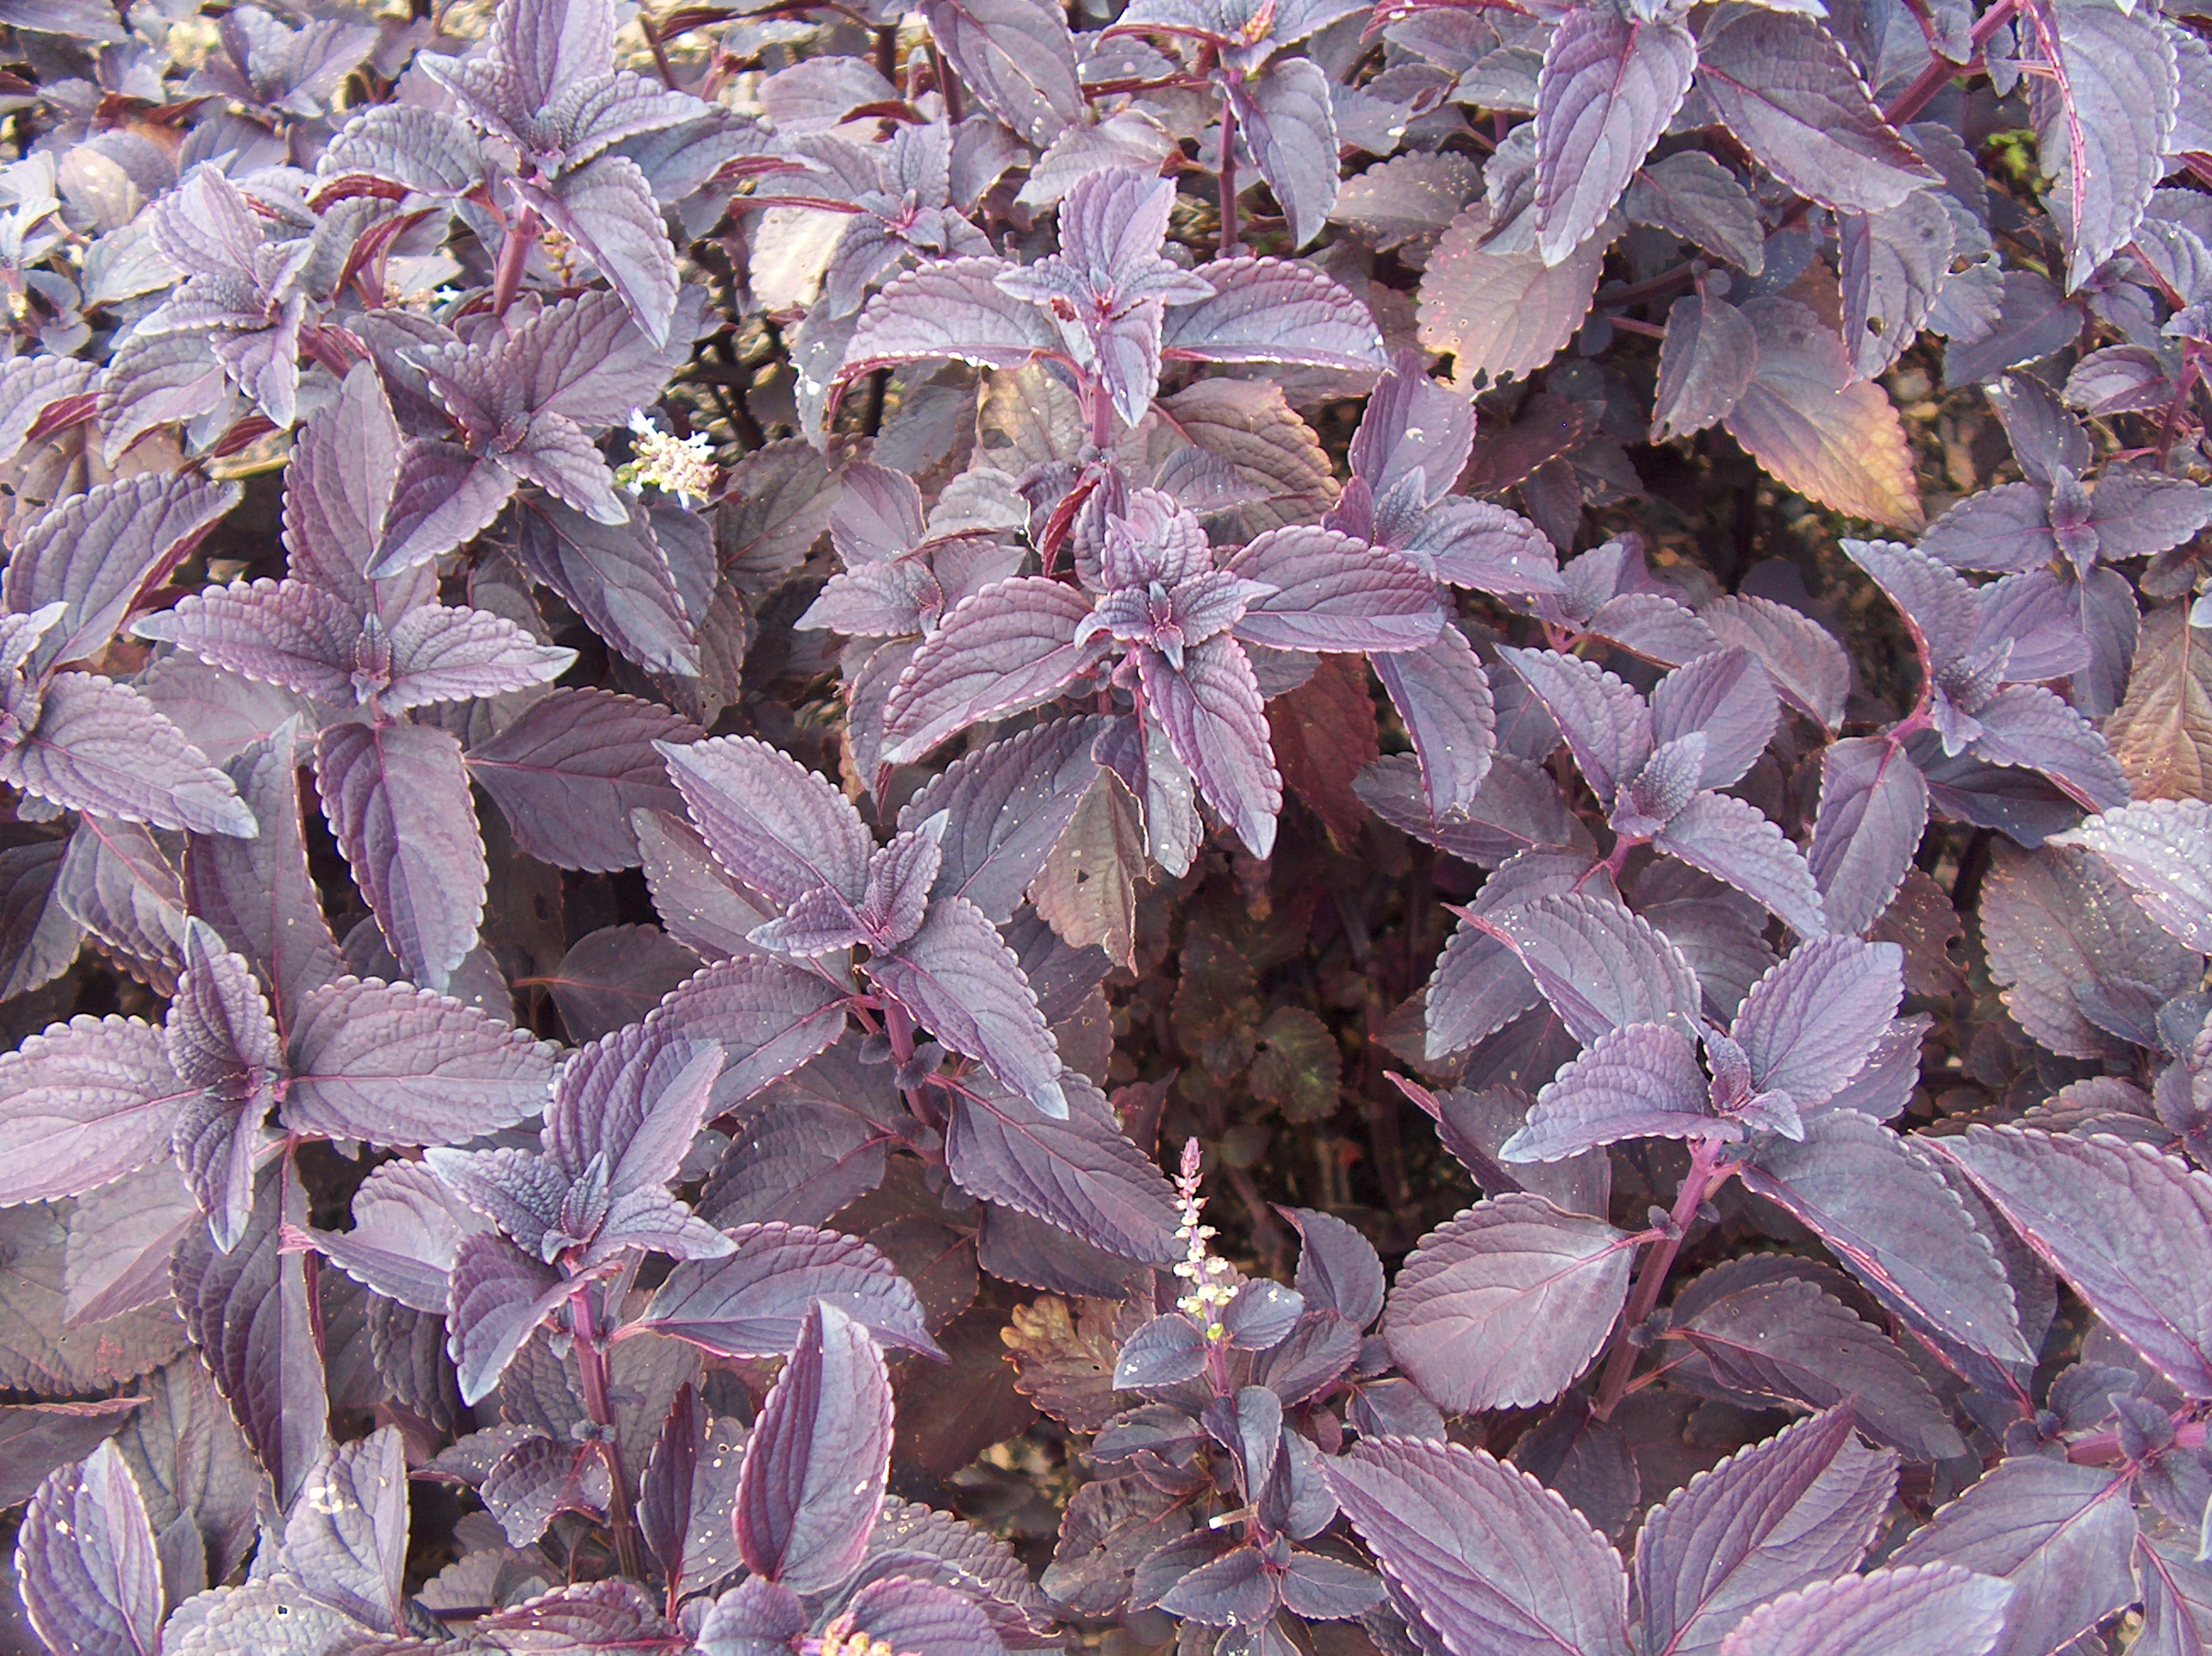 Solenostemon scutellarioides 'Dark Star' / Solenostemon scutellarioides 'Dark Star'